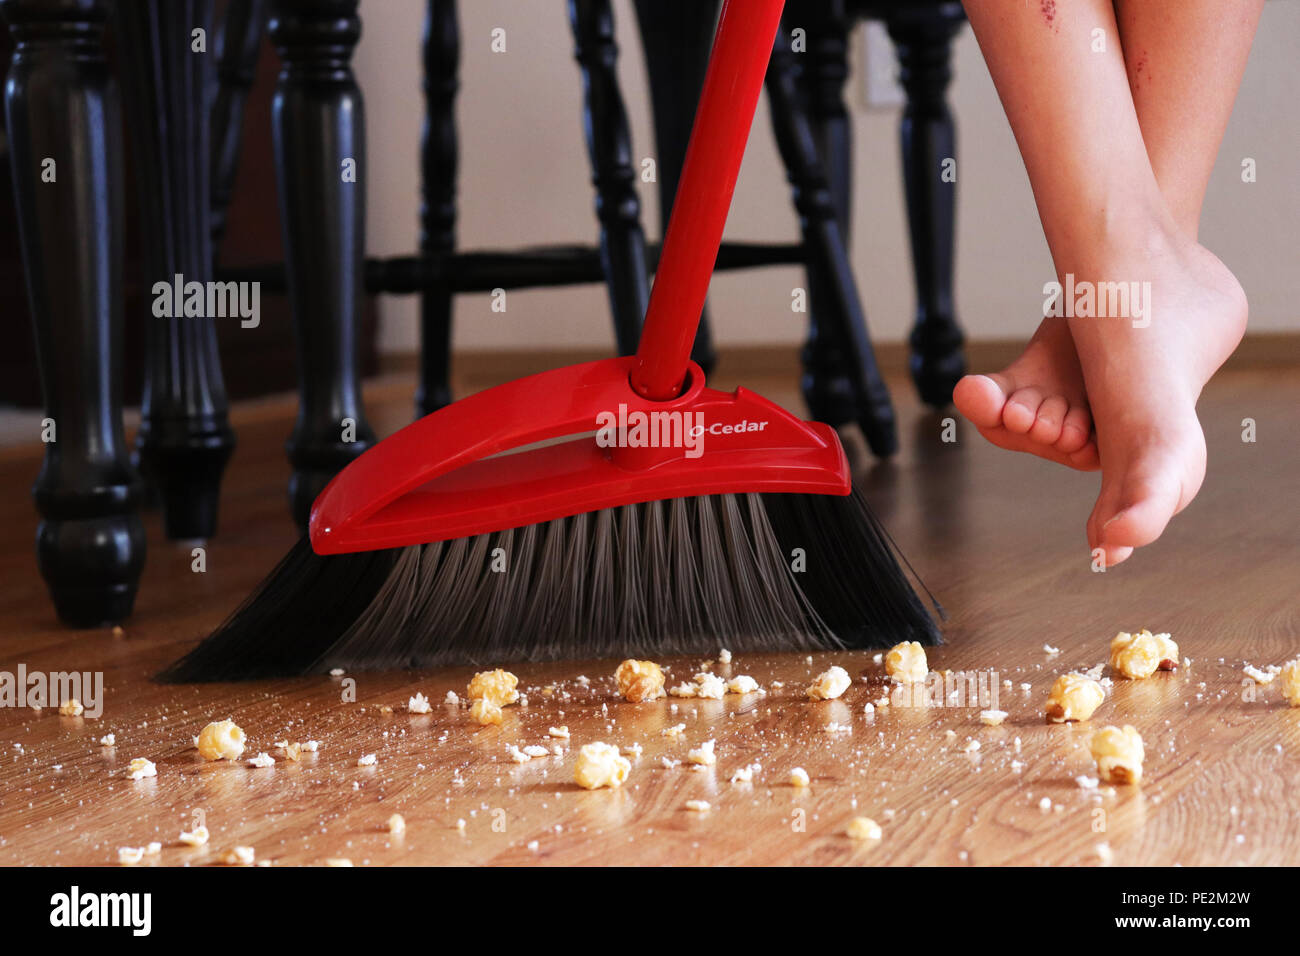 Cleaning up a child's mess with O-Cedar broom - Stock Image